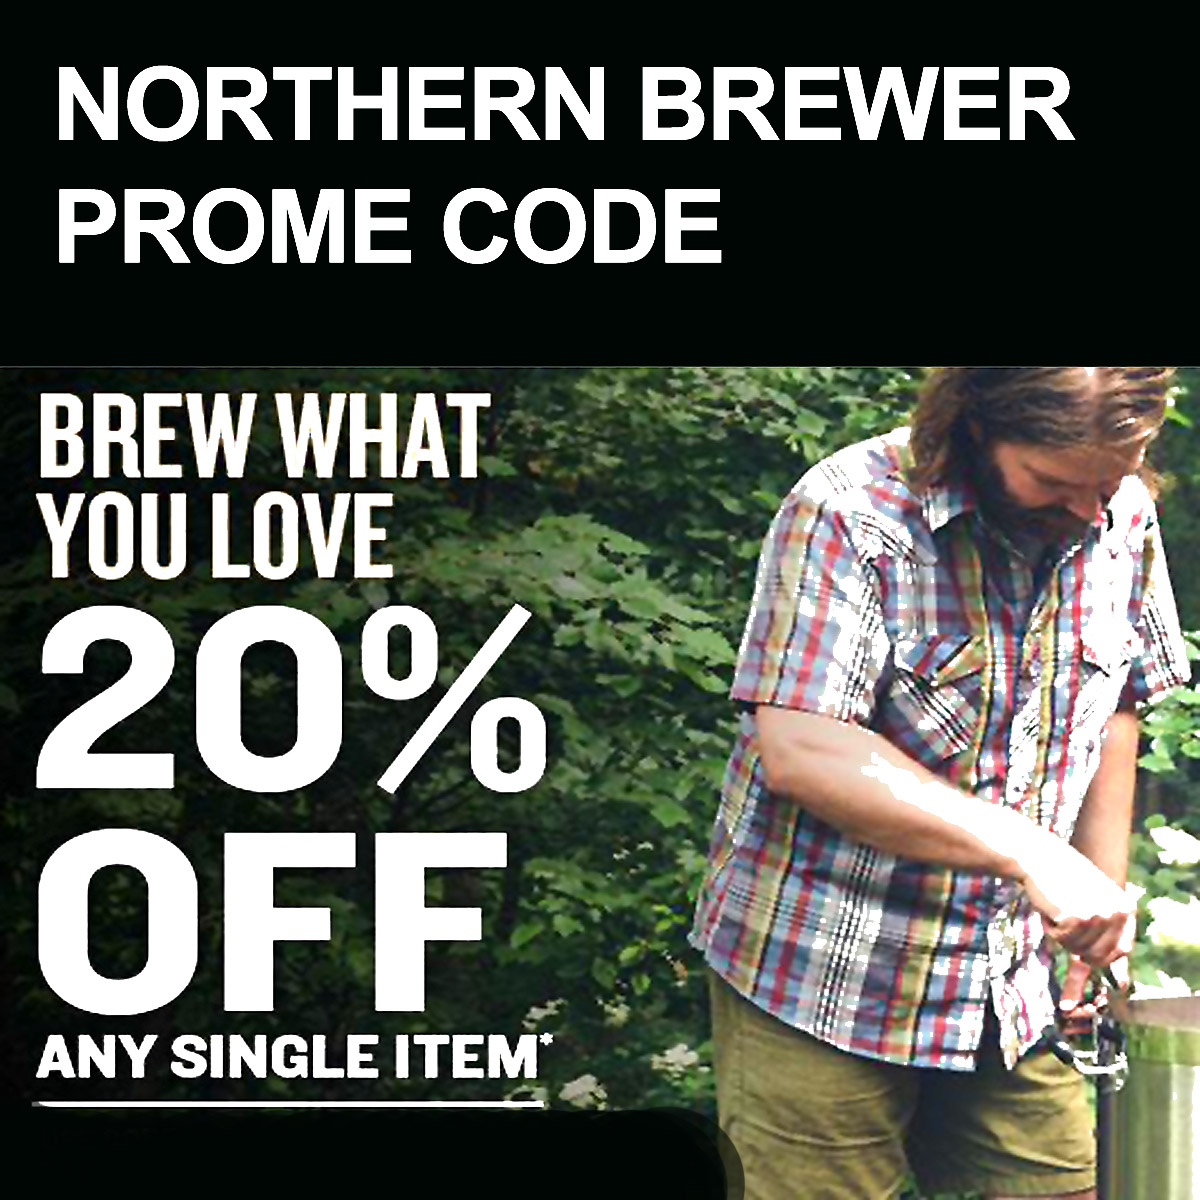 Northern Brewer Save 20% On A Single Item at NorthernBrewer.com with this Northern Brewer Promo Code Coupon Code